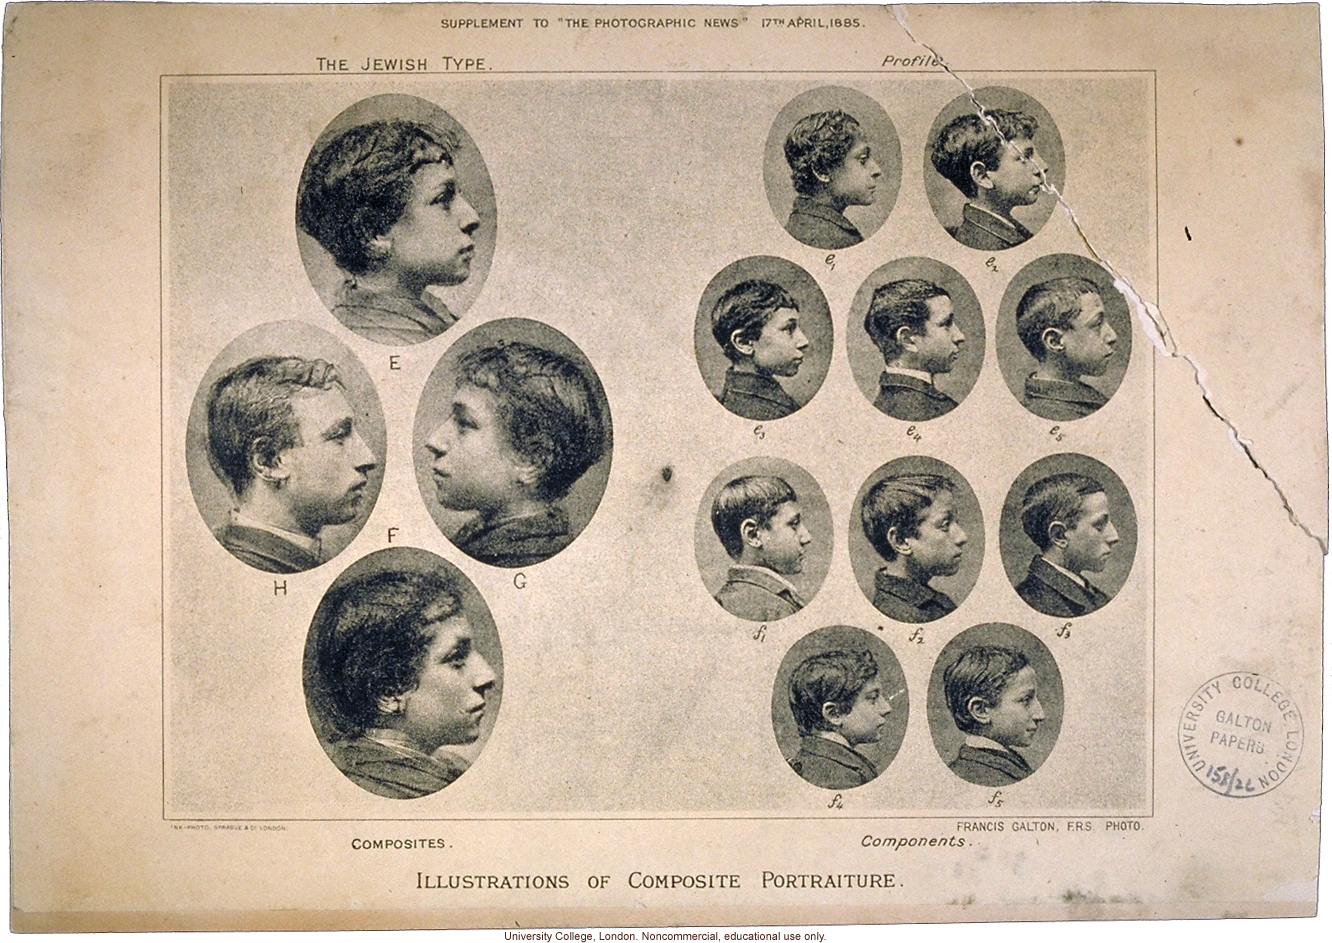 &quote;Illustrations of Composite Portraiture, The Jewish Type,&quote; by Francis Galton, <i>The Photographic News</i> (4/17/1885) with two original photographs